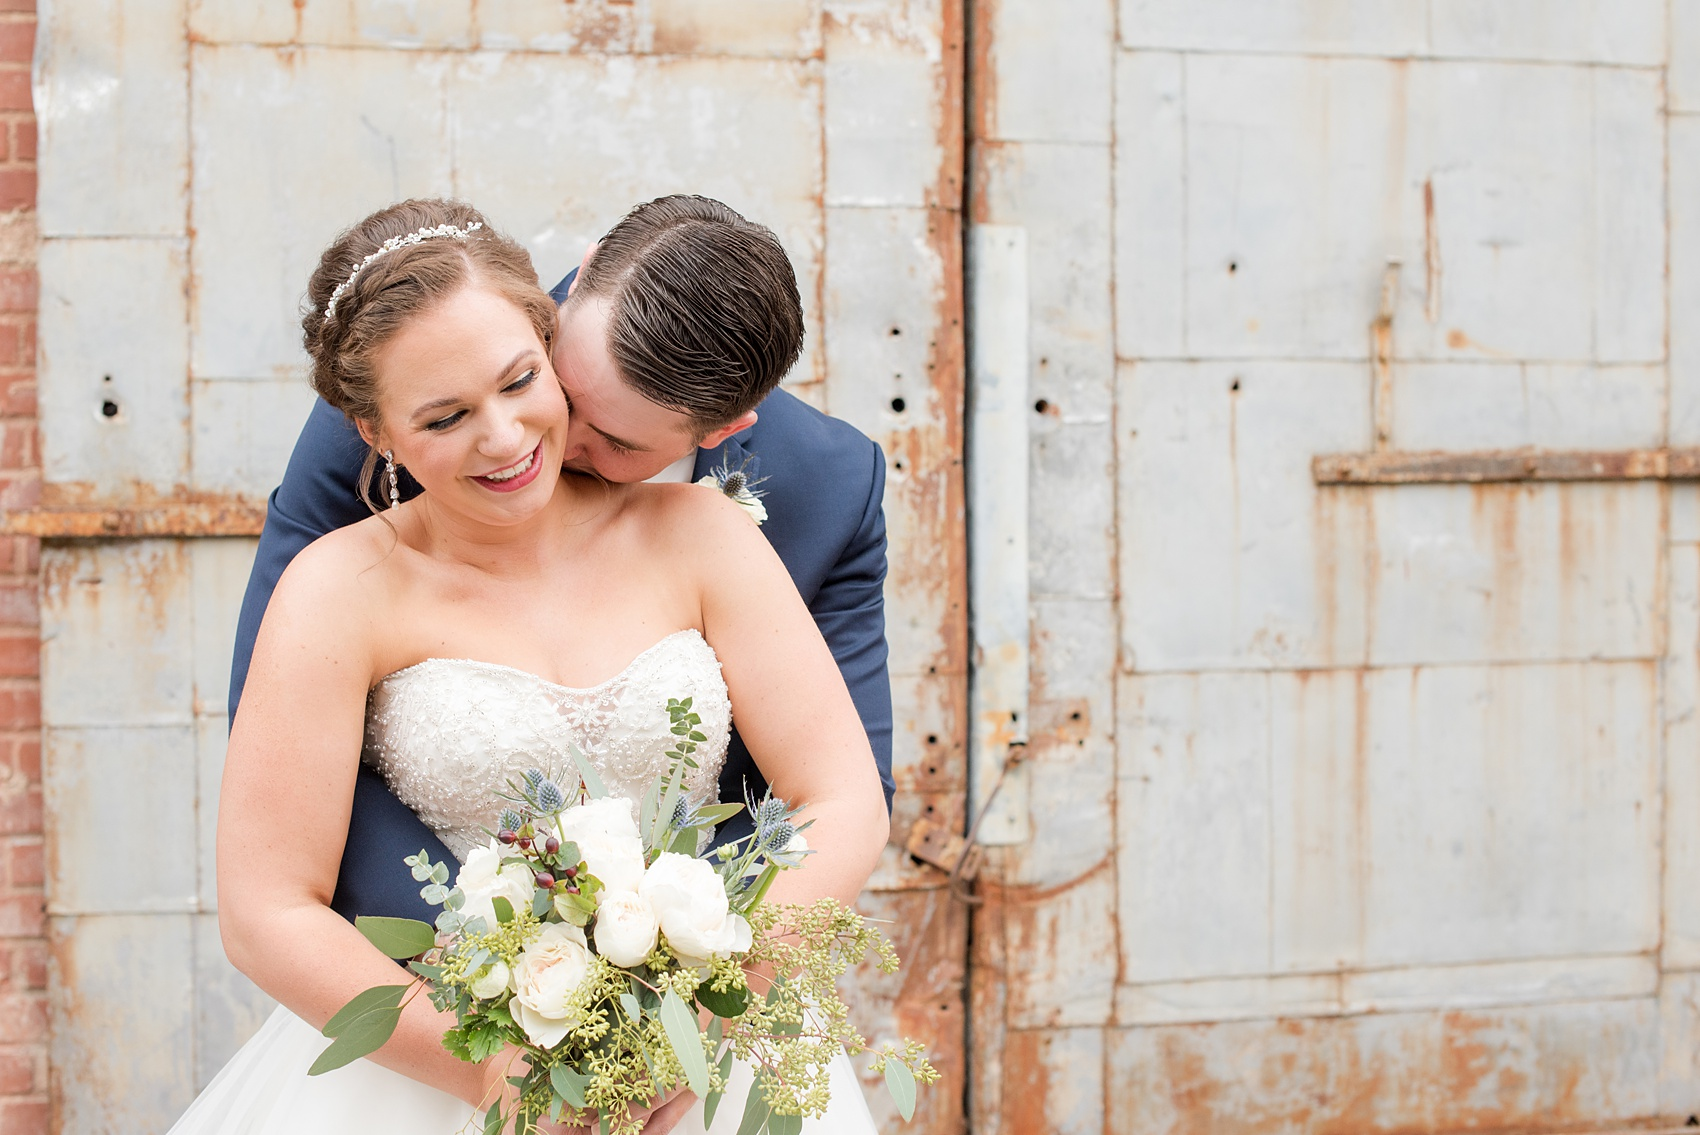 Durham wedding photos at The Cookery by Mikkel Paige Photography in North Carolina. In this cute picture of the bride and groom he kisses her neck in front of the venue's rustic metal door.